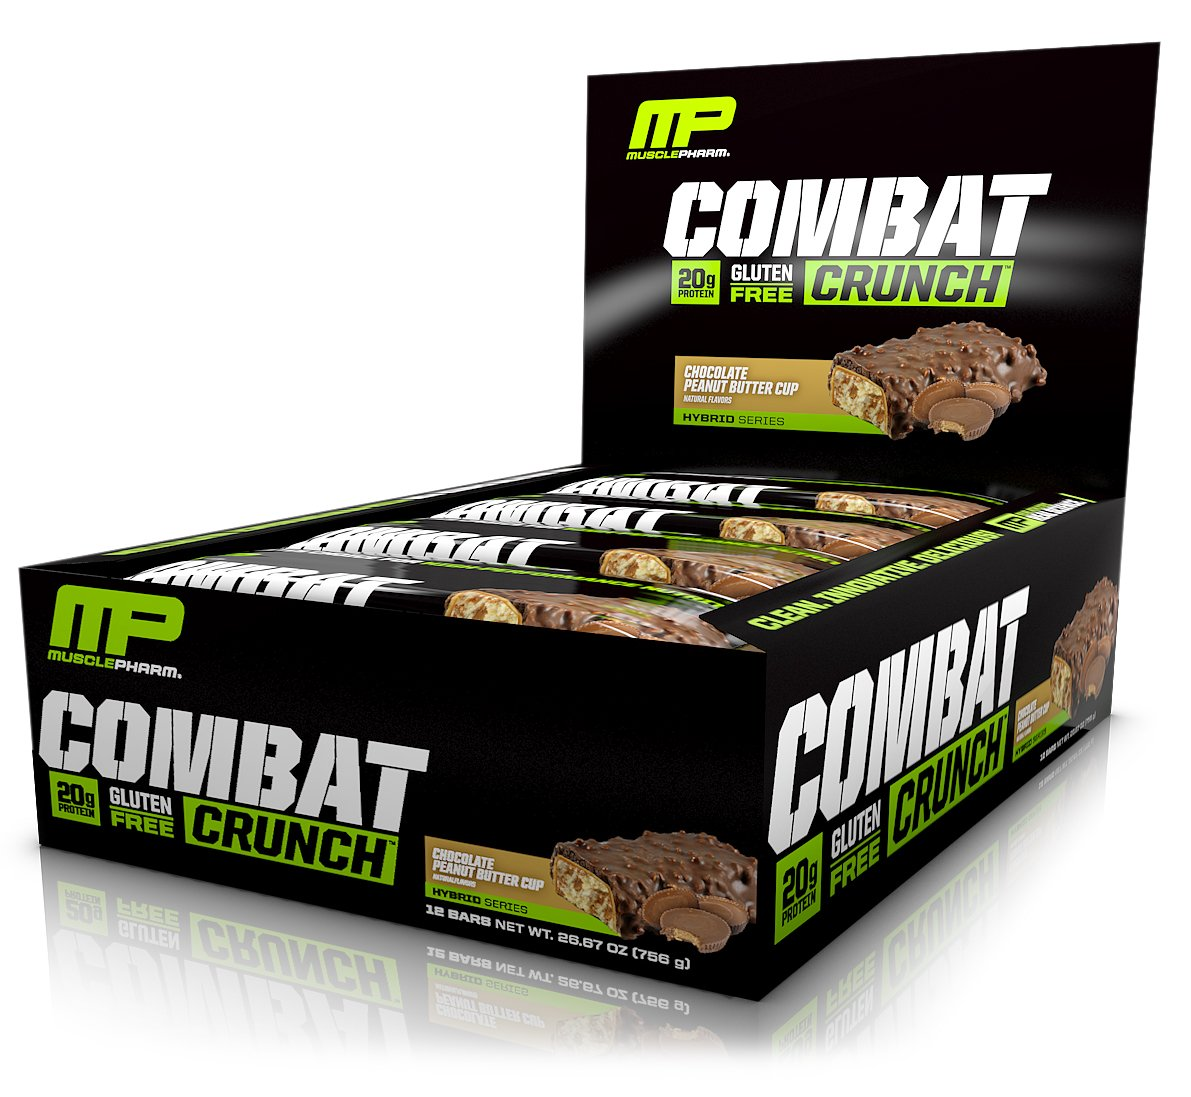 MusclePharm Combat Crunch Protein Bar, Multi-Layered Baked Bar, 20g Protein, Low Sugar, Low Carb, Gluten Free, Chocolate Peanut Butter Cup, 12 Bars